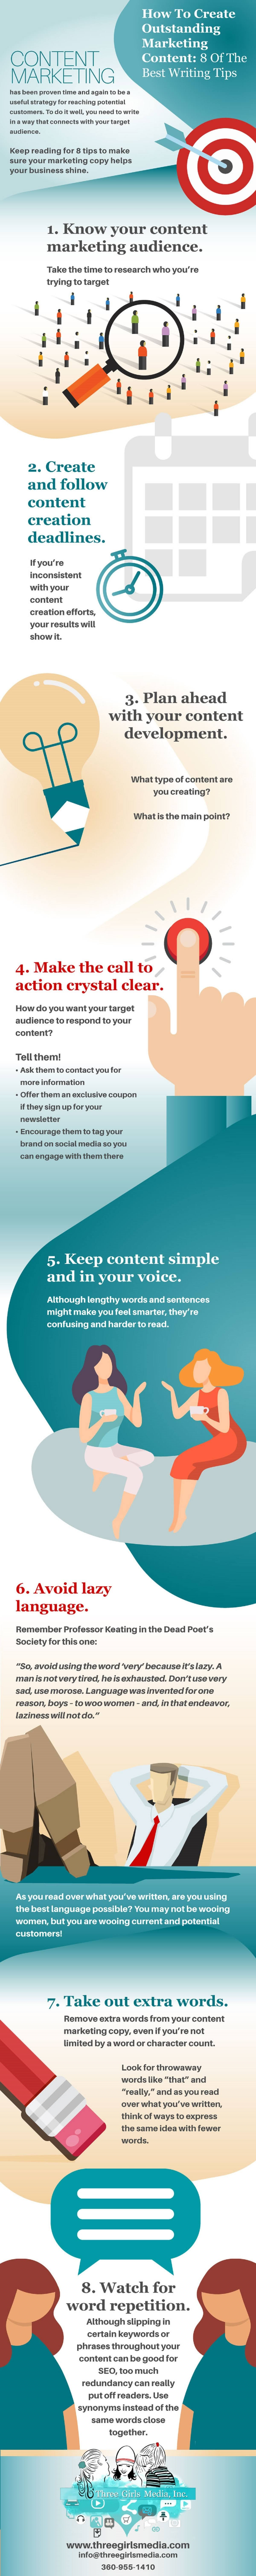 8-top-writing-tips-you-need-to-know-for-successful-content-marketing-infographic